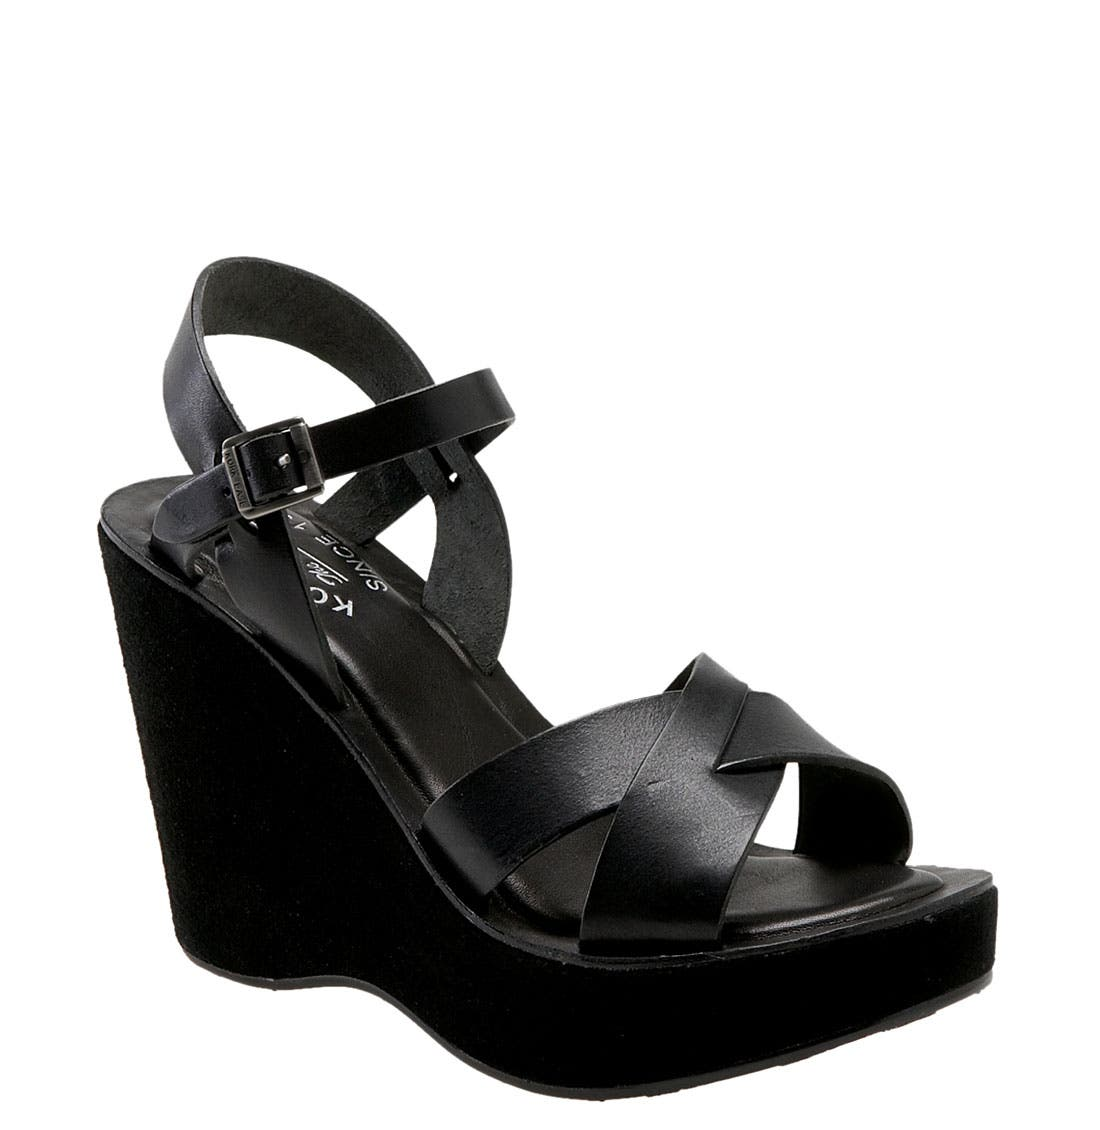 Main Image - Kork-Ease 'Bette' Wedge Sandal